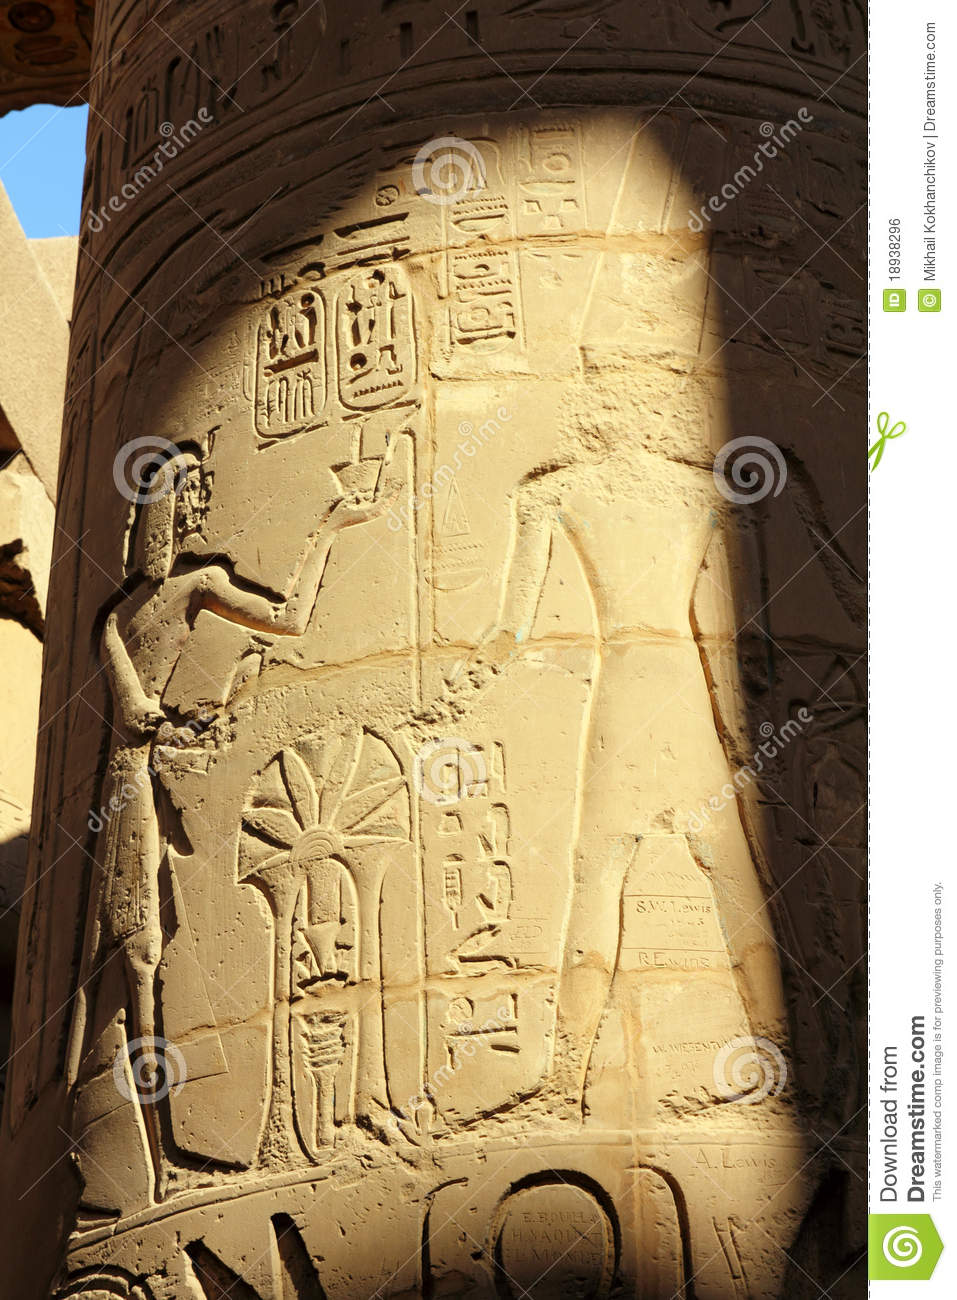 column with ancient egypt images and hieroglyphics royalty